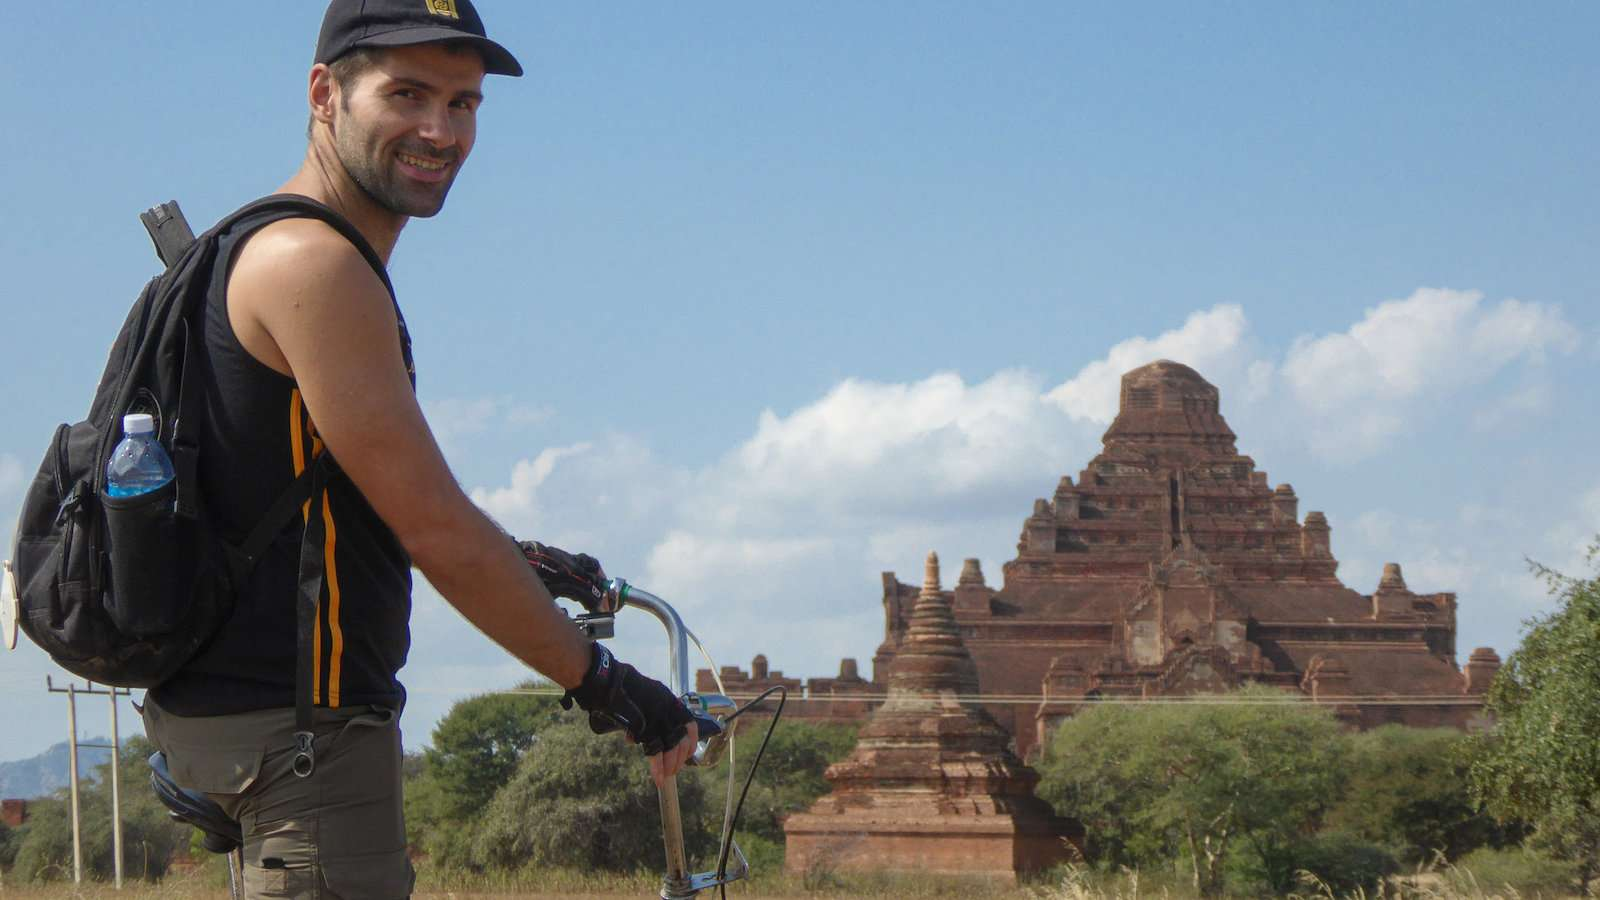 We recommend getting in early to see sunrise or sunset in Bagan